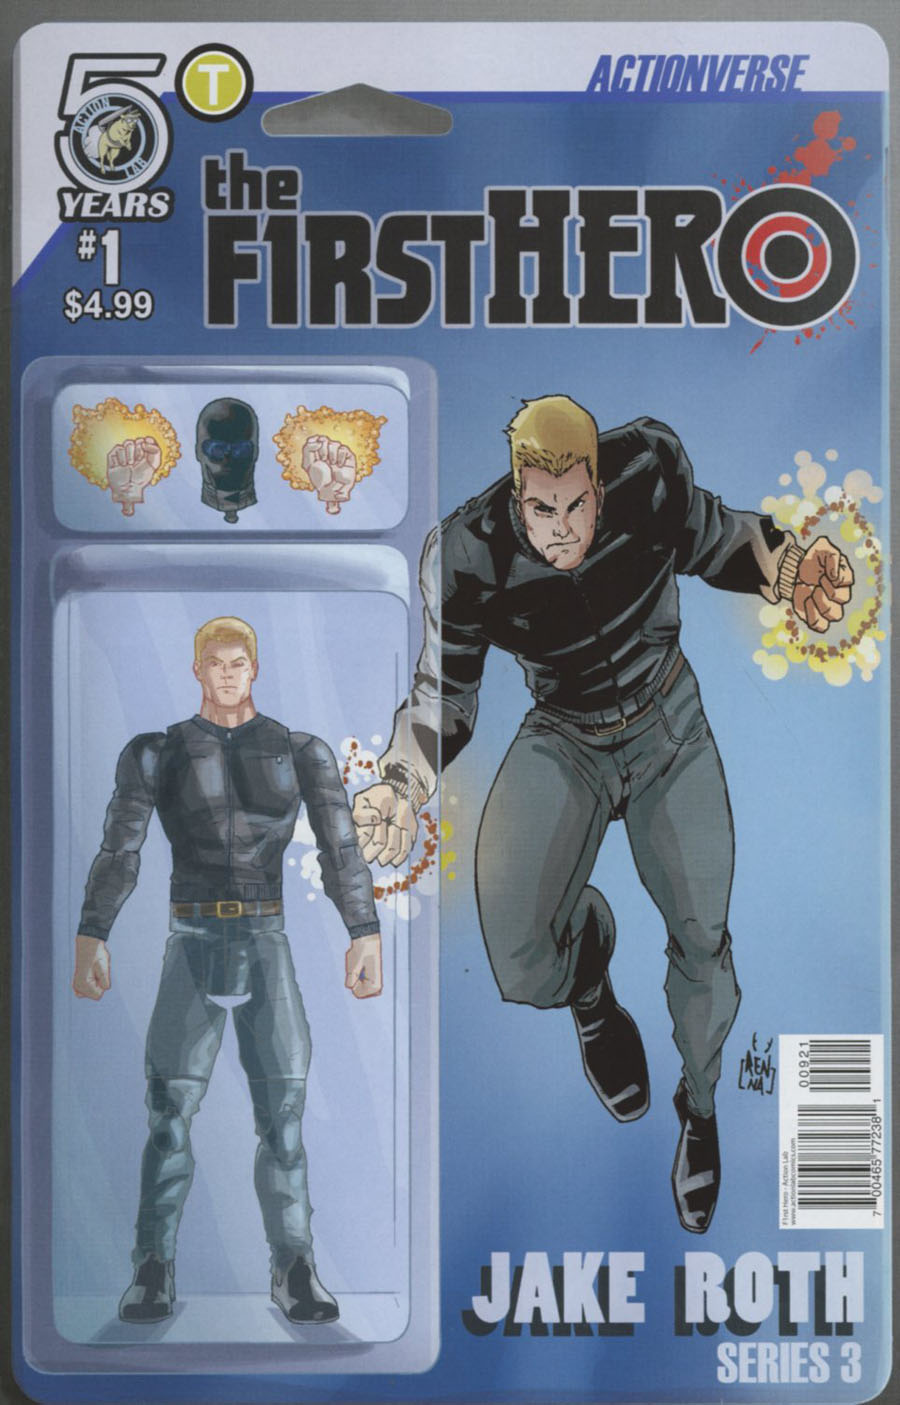 F1rst Hero Wednesdays Child #1 Cover B Variant Marco Renna & Anthony Ruttgaizer Actionverse Figure Cover